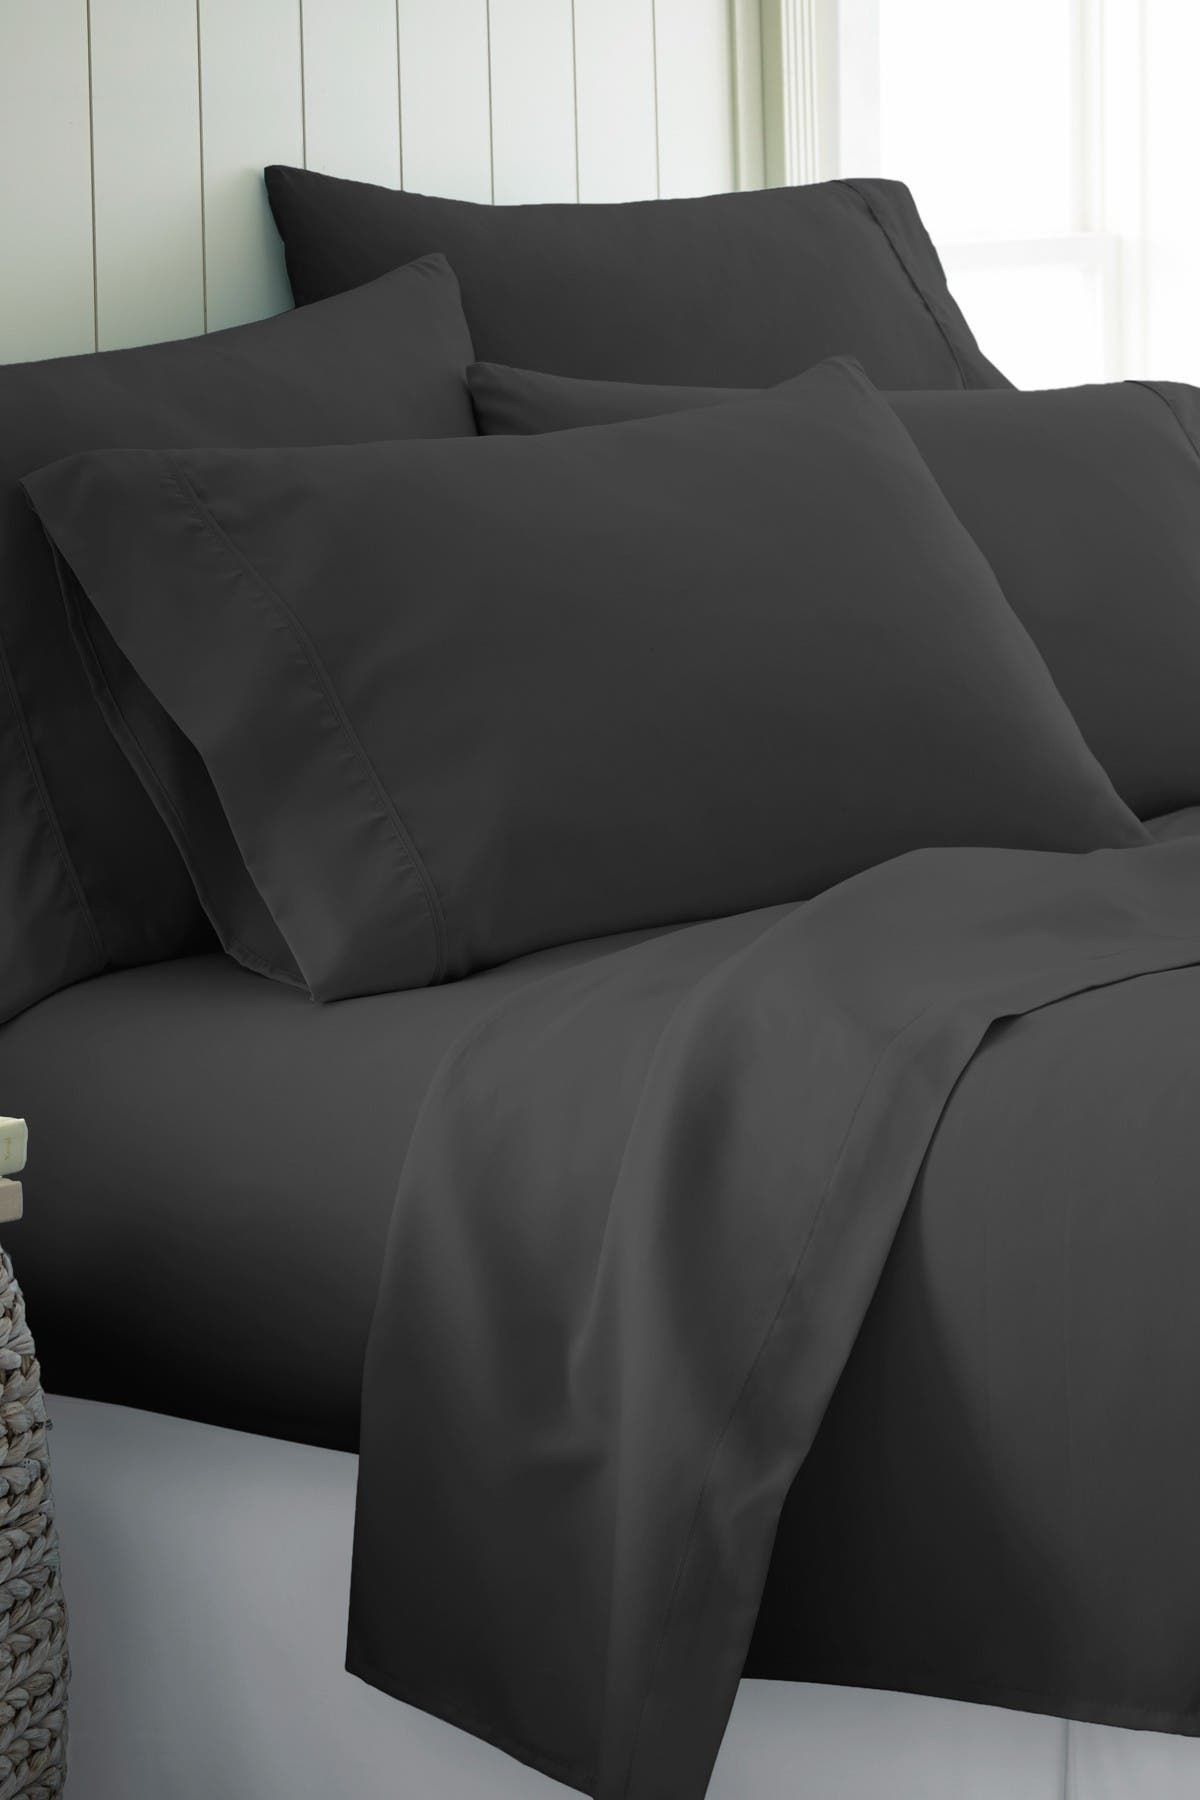 Image of IENJOY HOME Full Hotel Collection Premium Ultra Soft 6-Piece Bed Sheet Set - Black